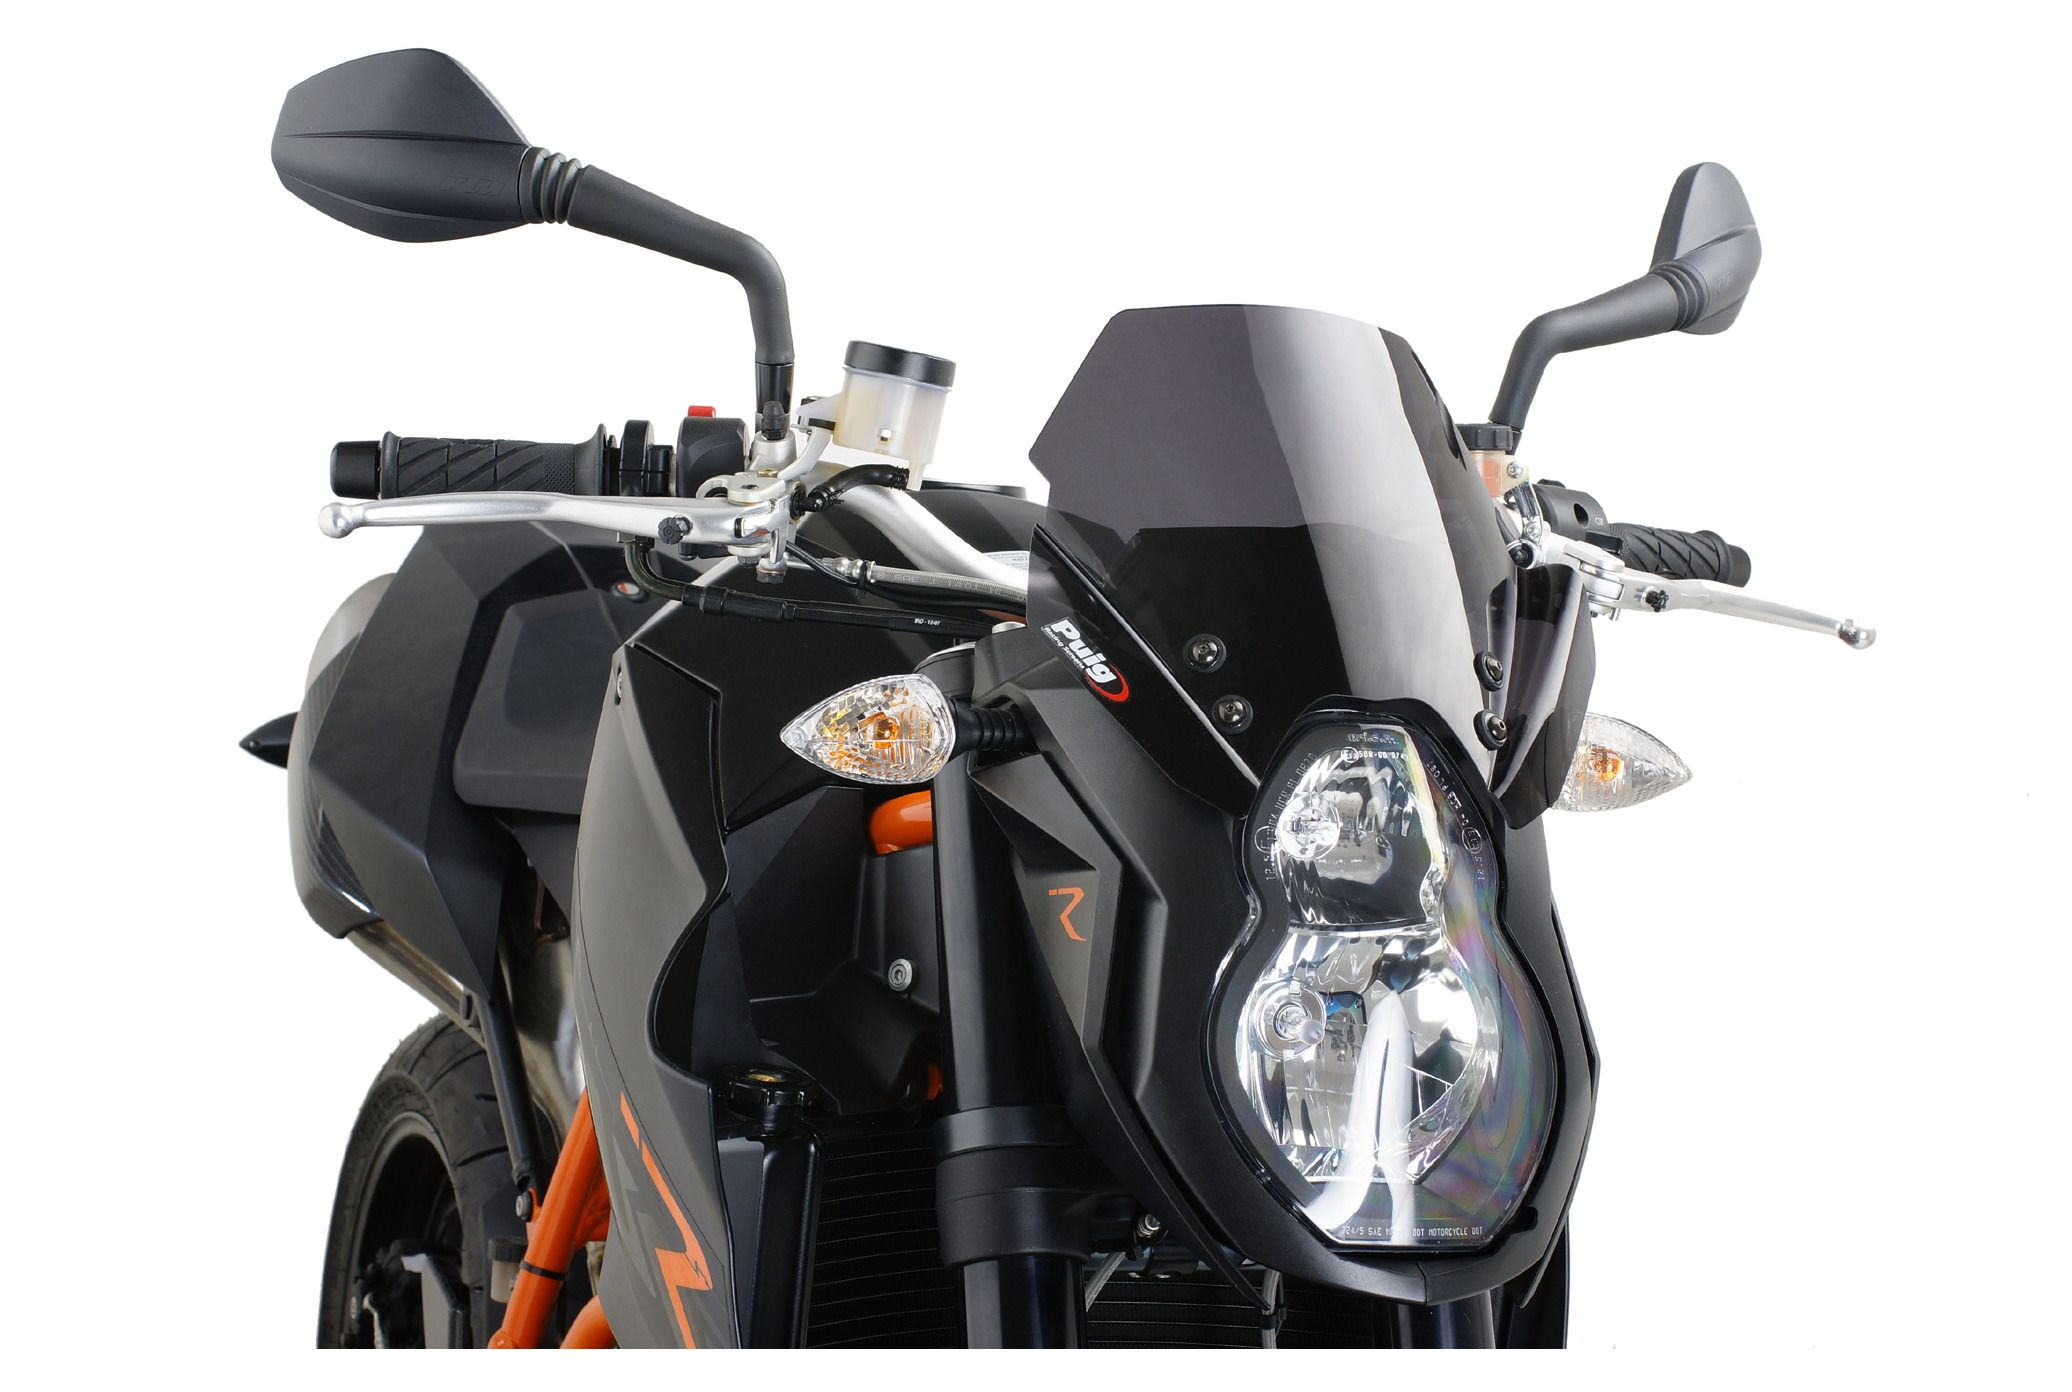 Puig Naked New Generation Windscreen KTM 990 Super Duke R 2007 2012